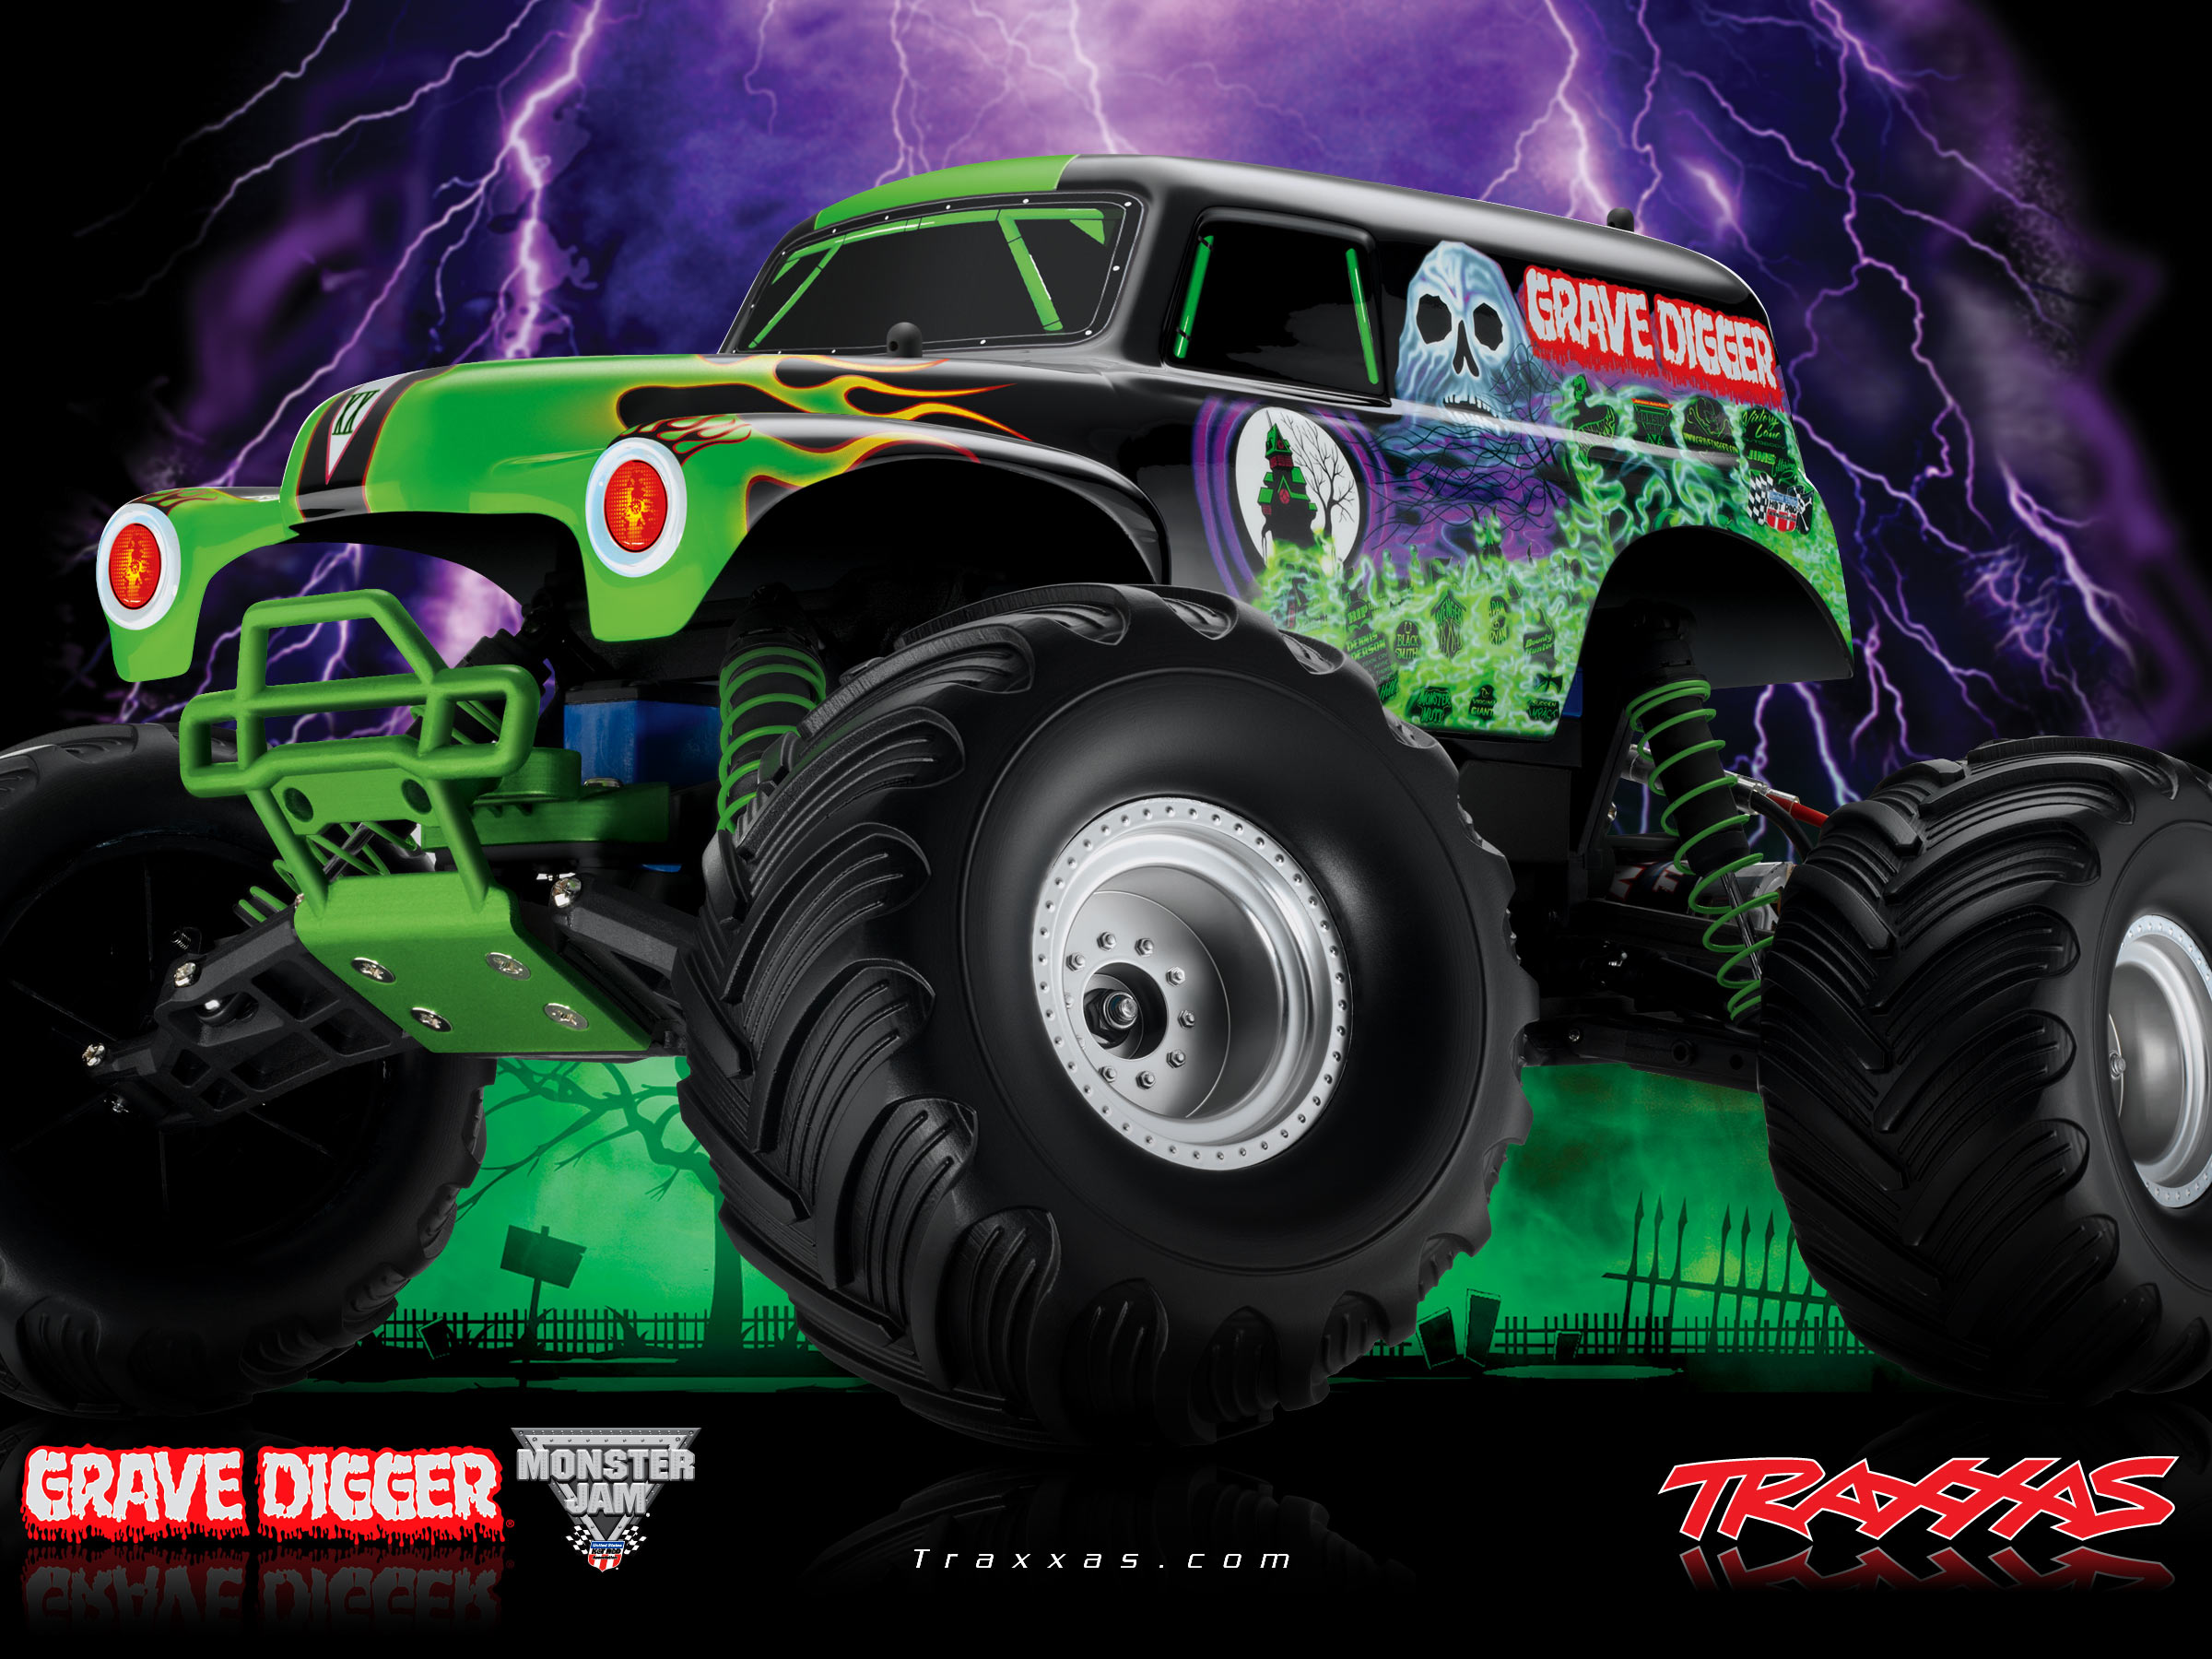 monster truck 1 with Grave Digger Monster Truck 4x4 Race Racing Monster Truck Lk on Kokosnuss 1 likewise Images additionally 2016 06 04 0745 2651087740 together with Stallion1 additionally ments.